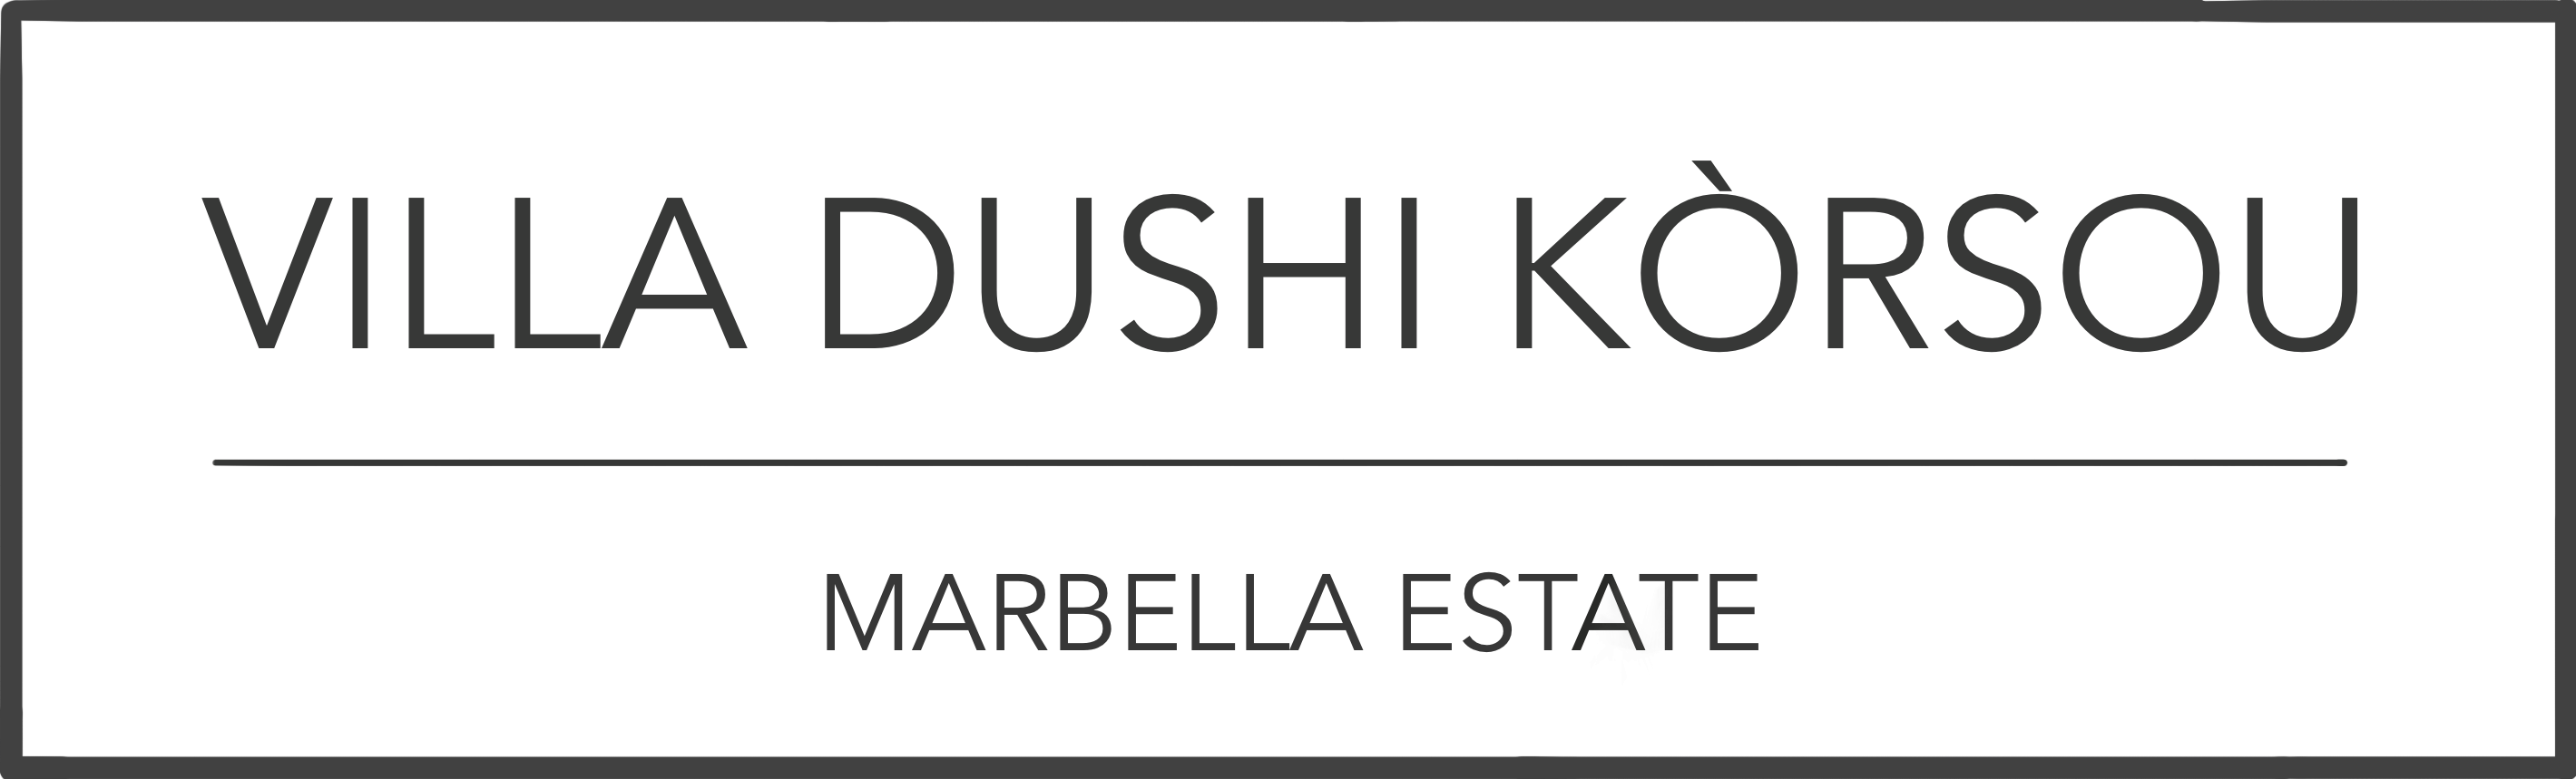 Villa Dushi Korsou Website